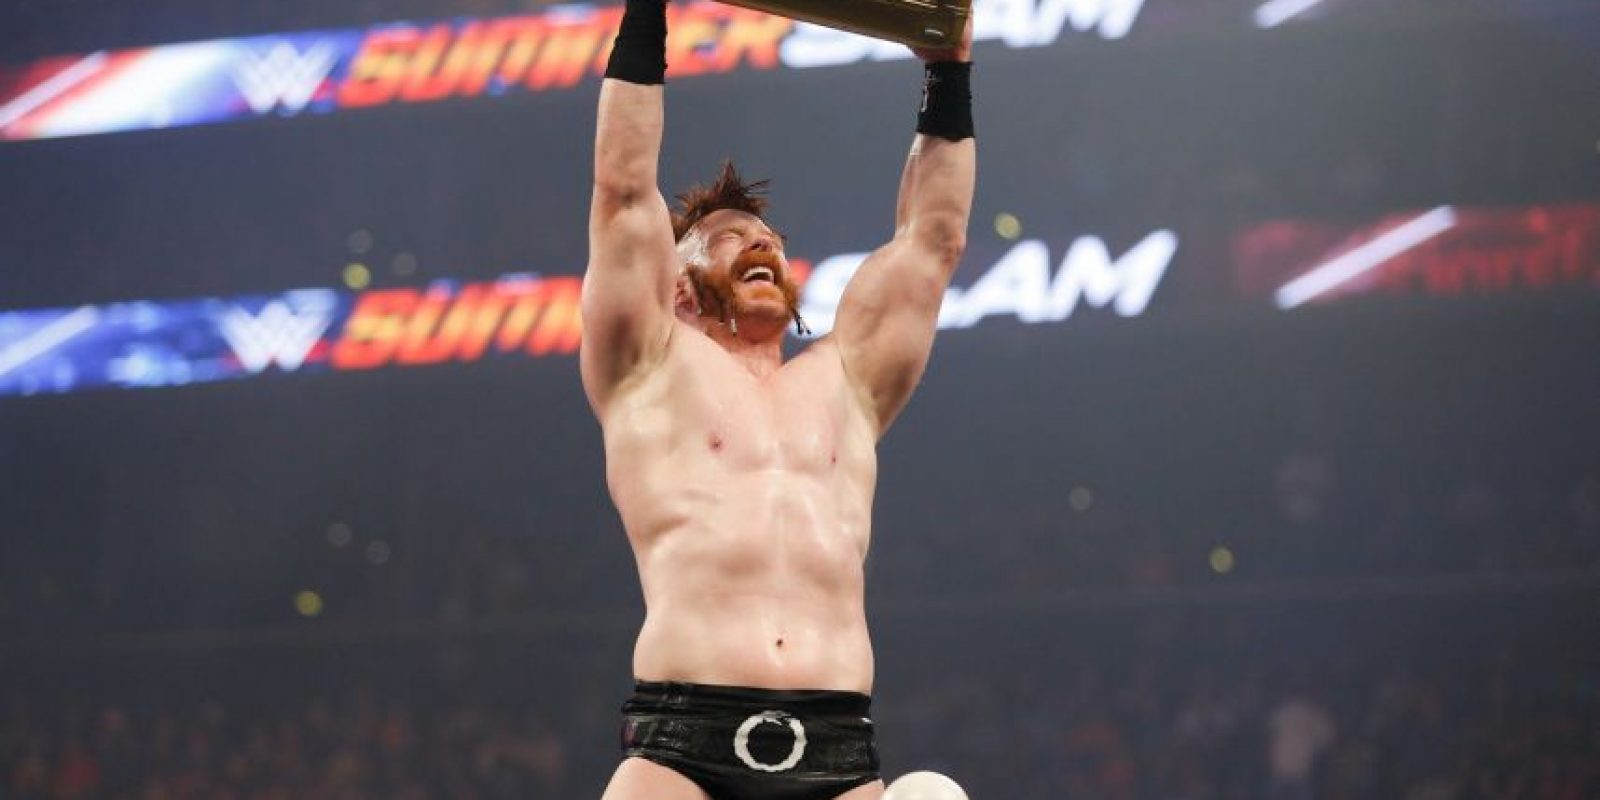 6. Sheamus Foto: Getty Images